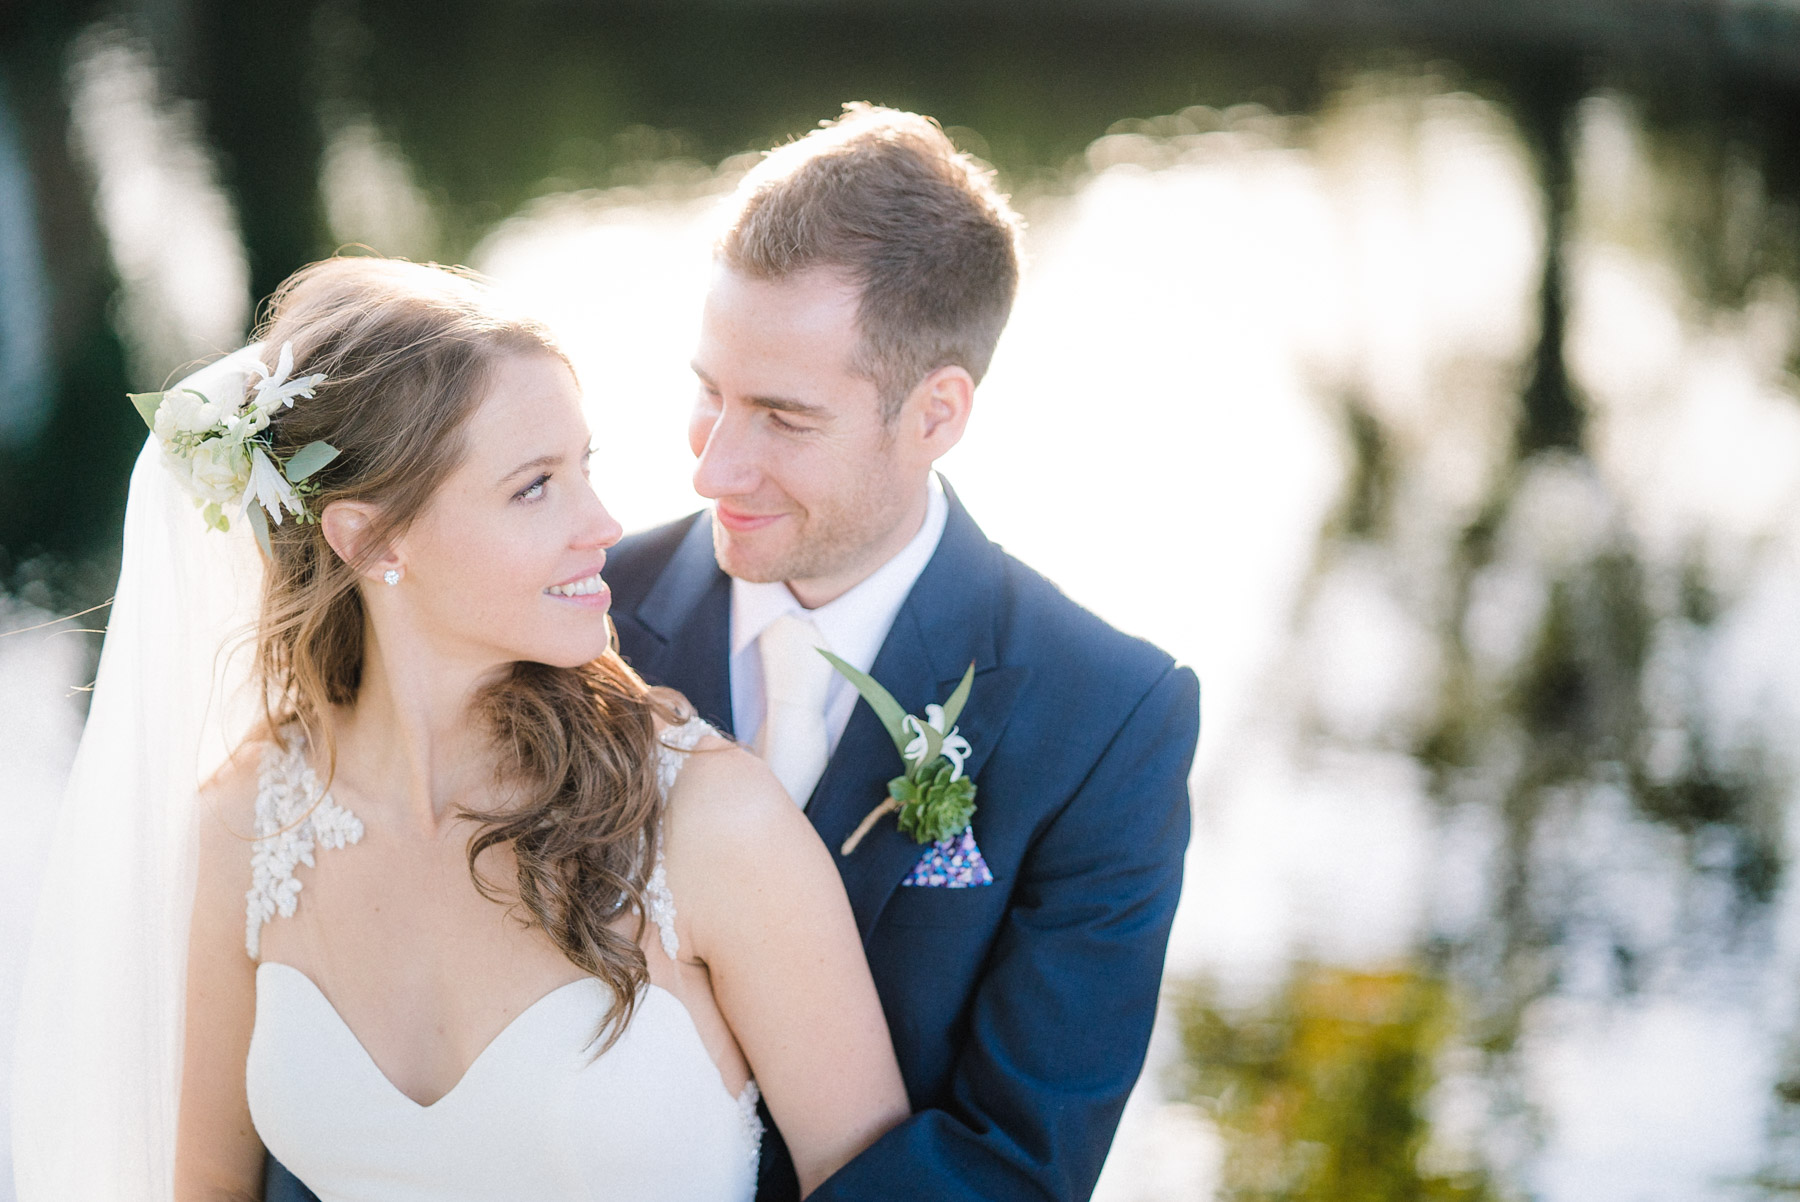 bride and groom pose for their wedding photography at micklefield hall